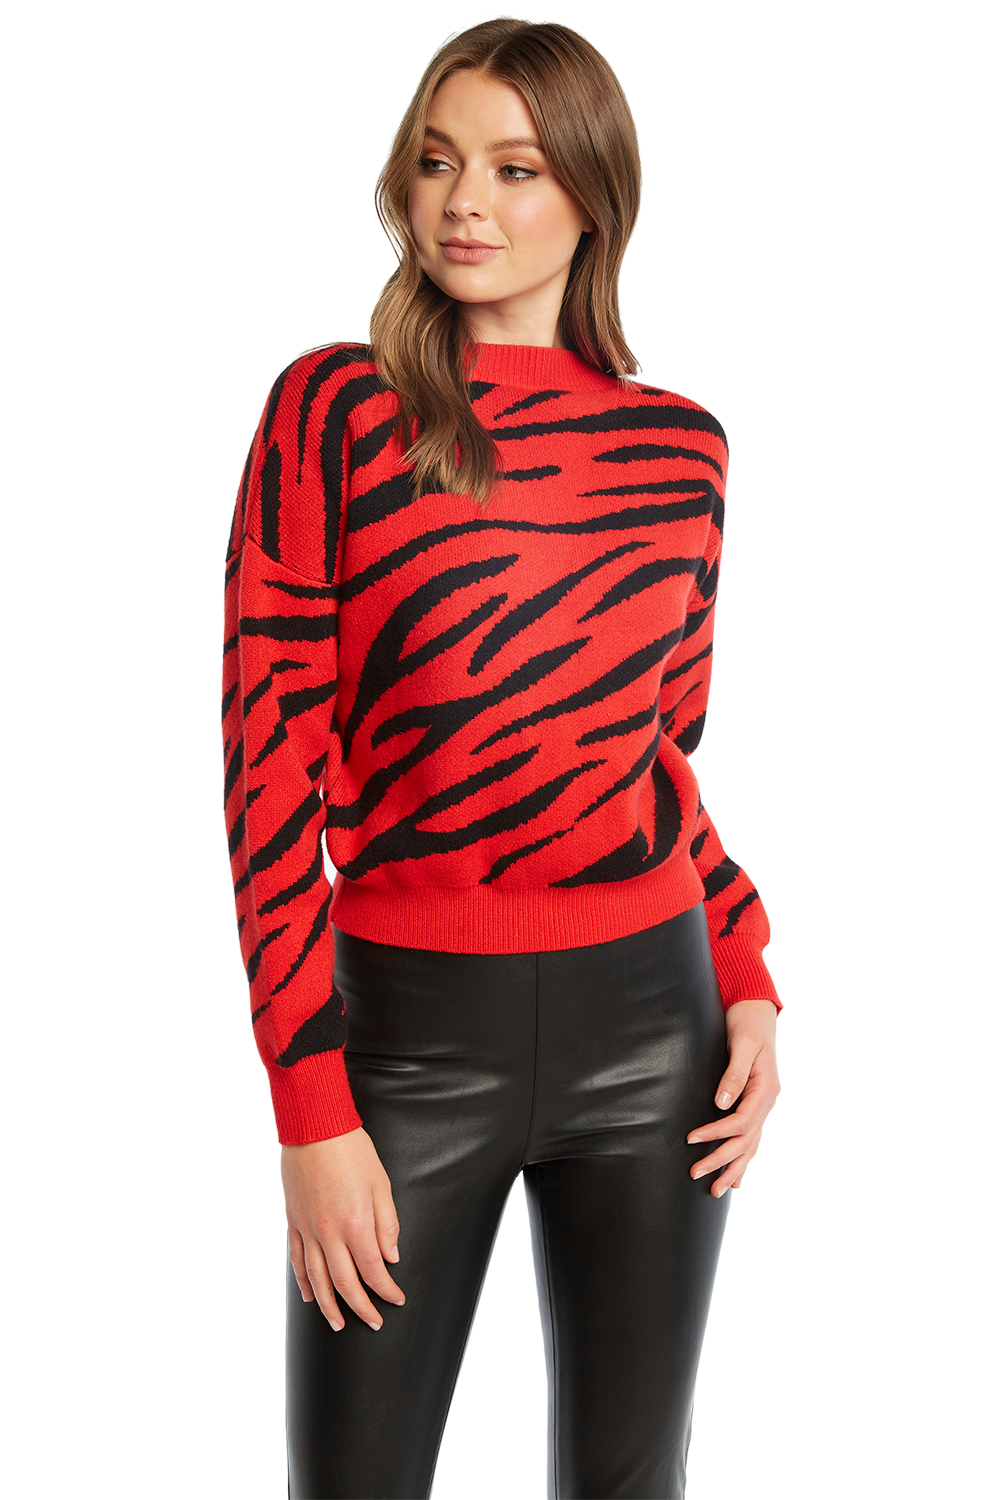 RED ZEBRA KNIT in colour RIBBON RED